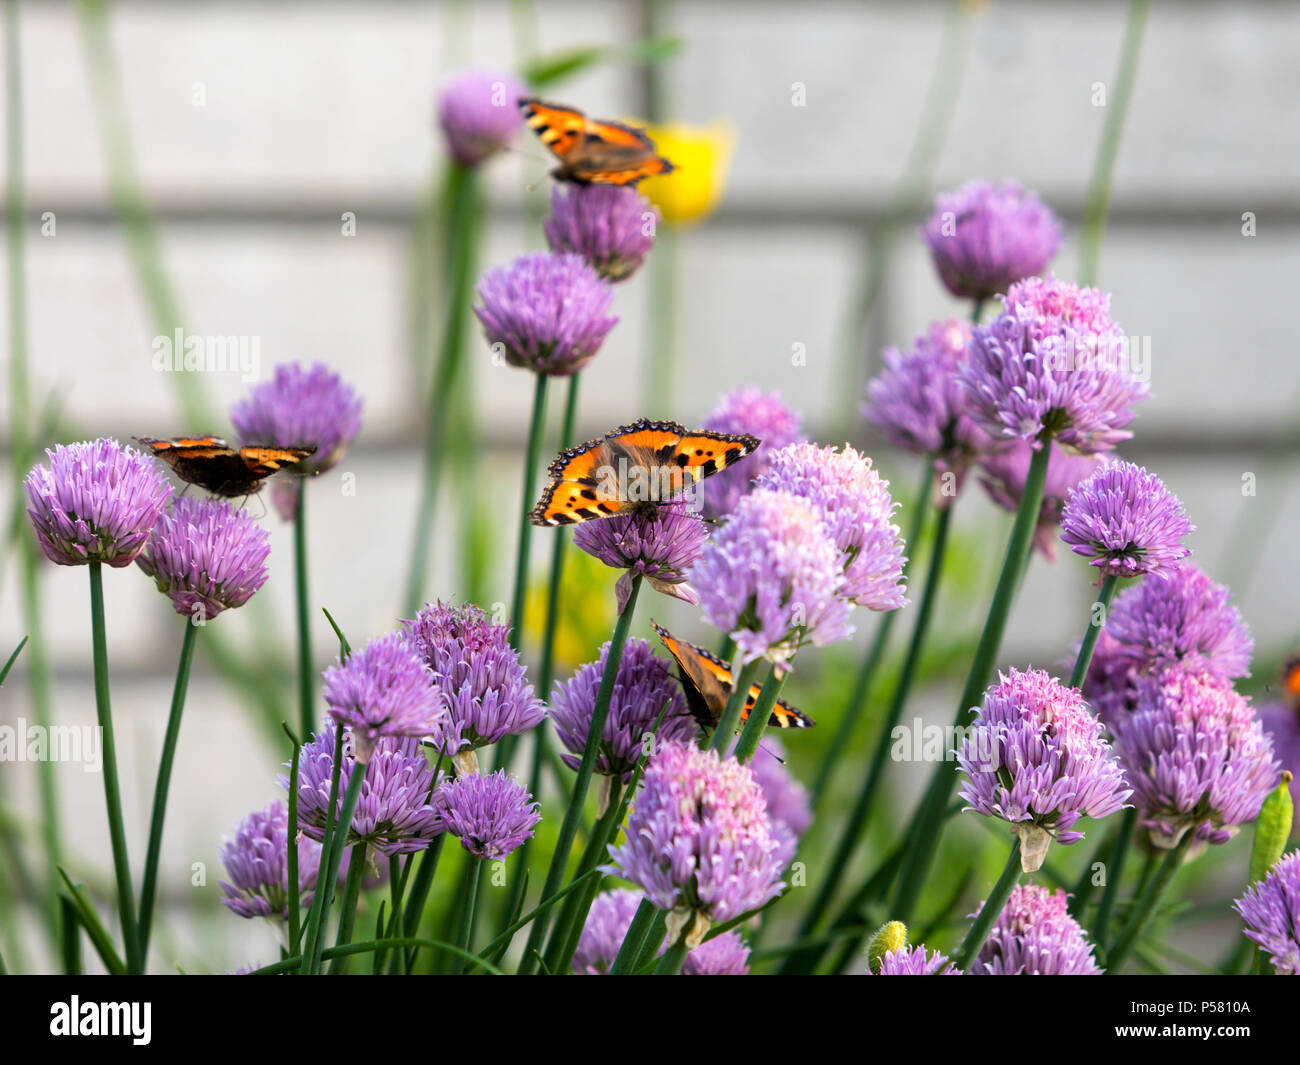 Small Tortoiseshell butterflies feeding on chives blossoms - Stock Image